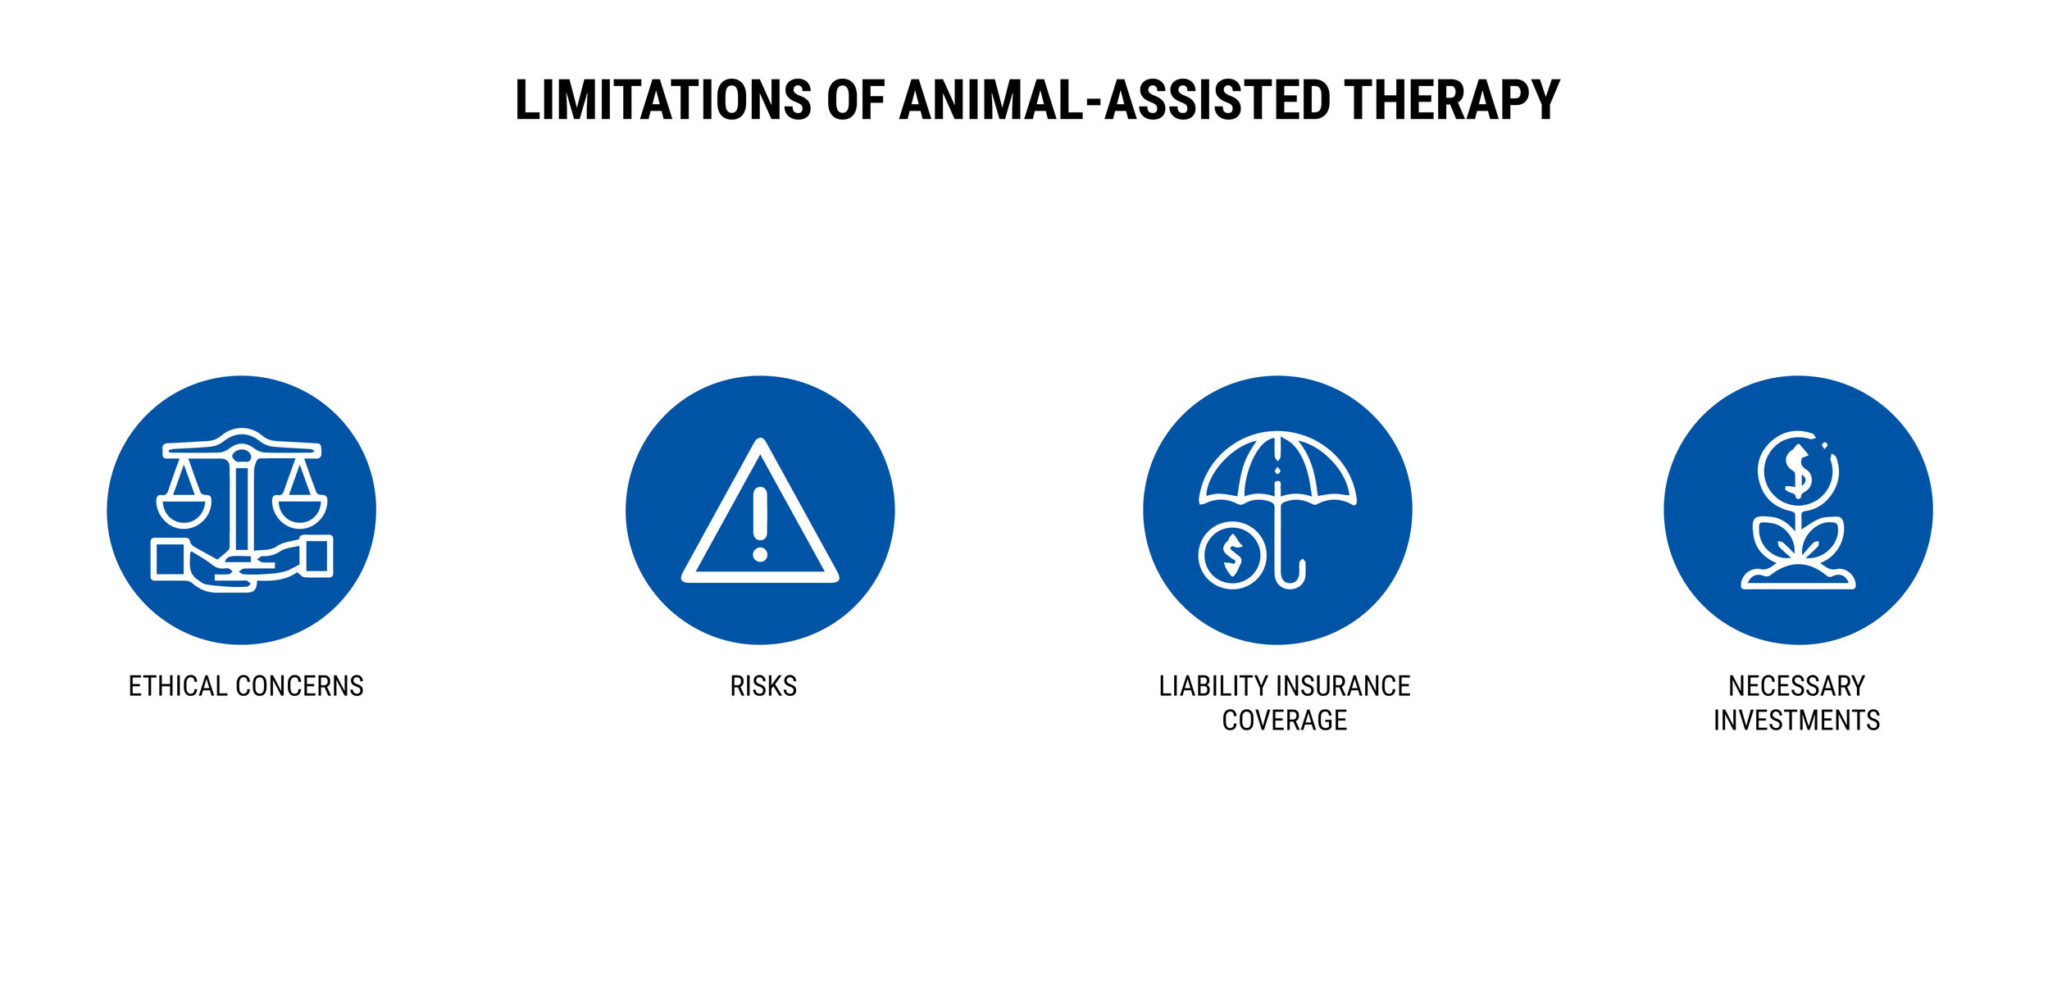 LIMITATIONS OF ANIMAL-ASSISTED THERAPY